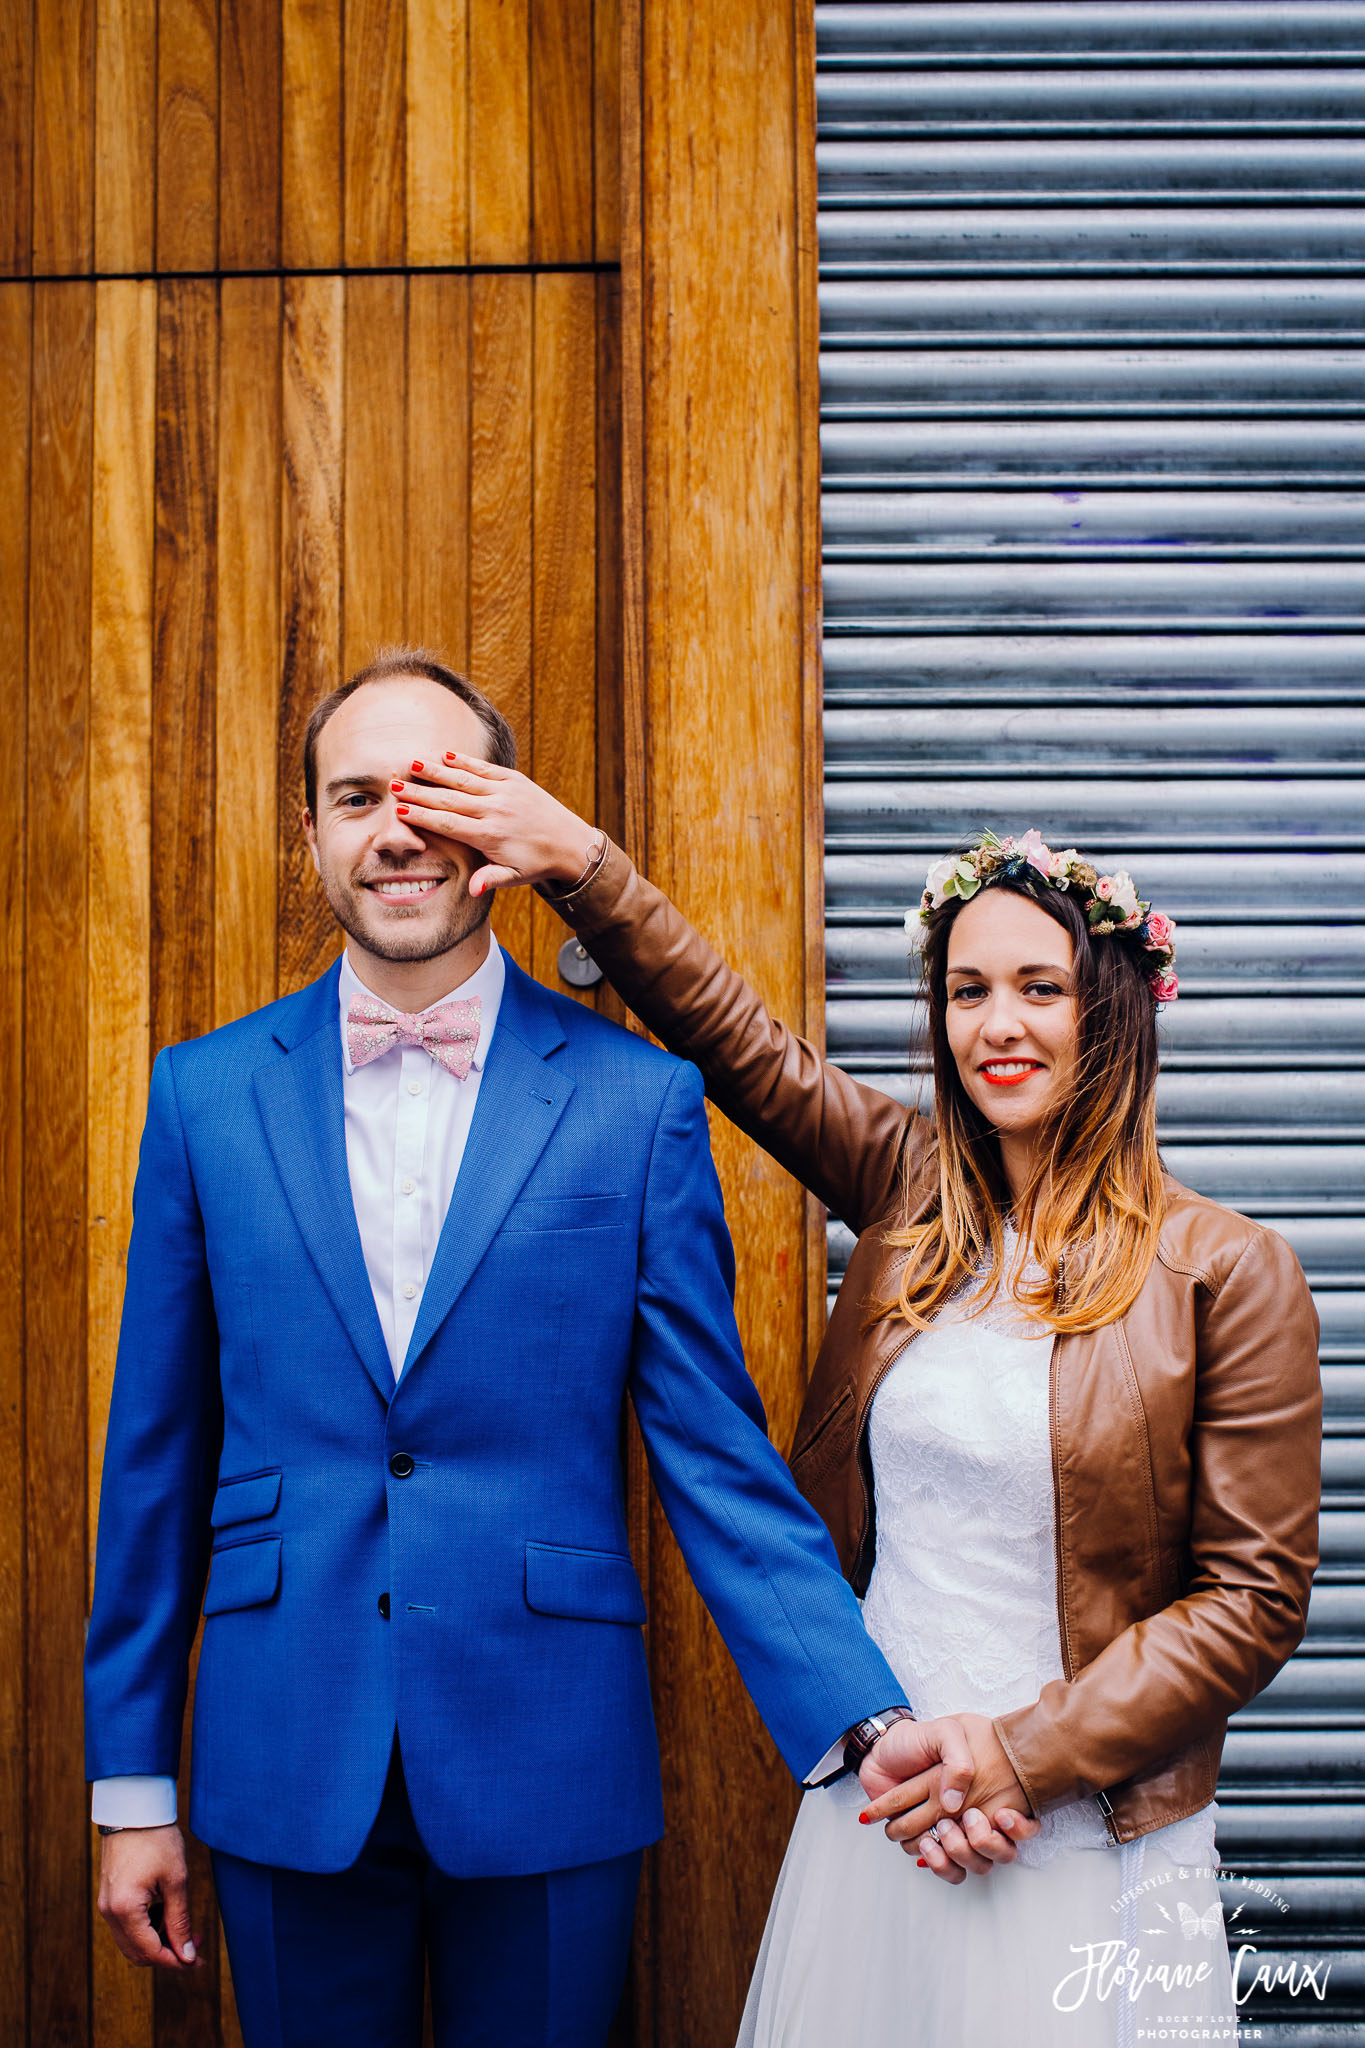 wedding photography in East London Brick Lane